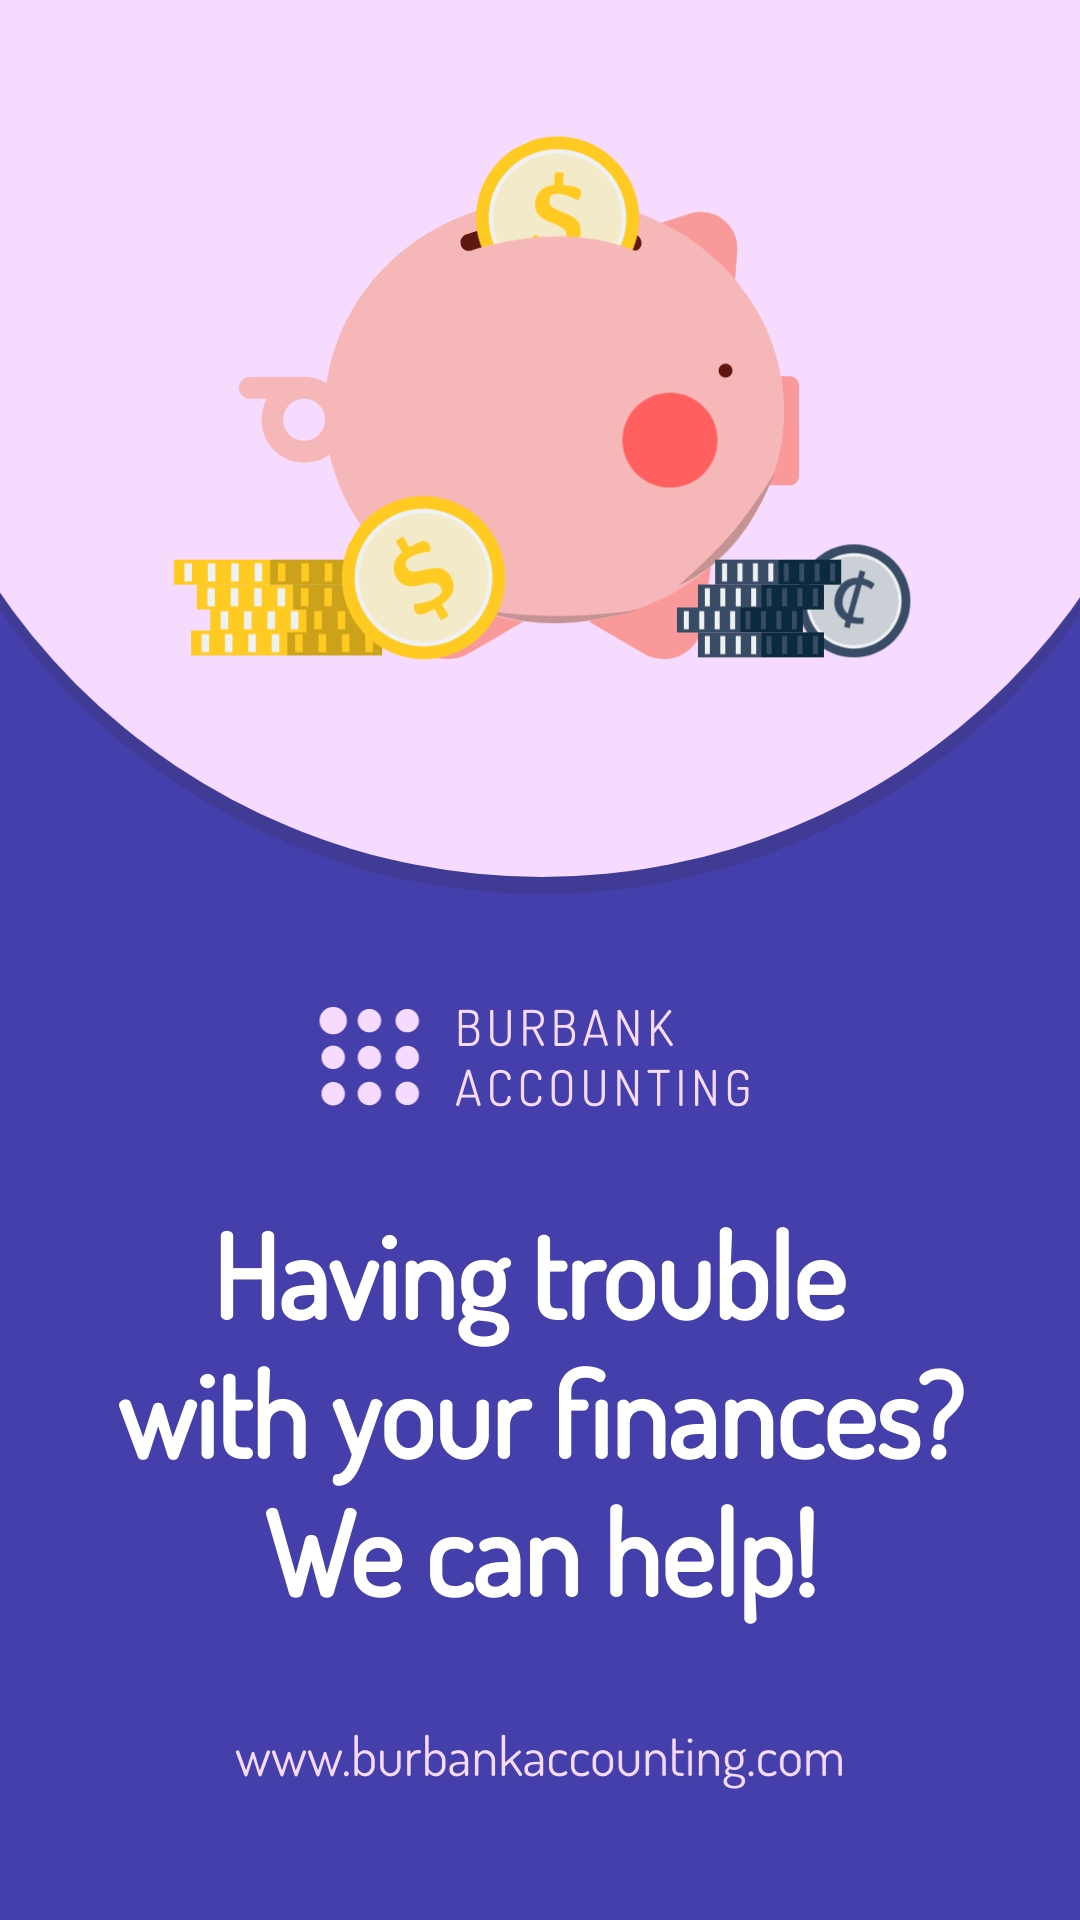 Burbank Accounting Vertical Template